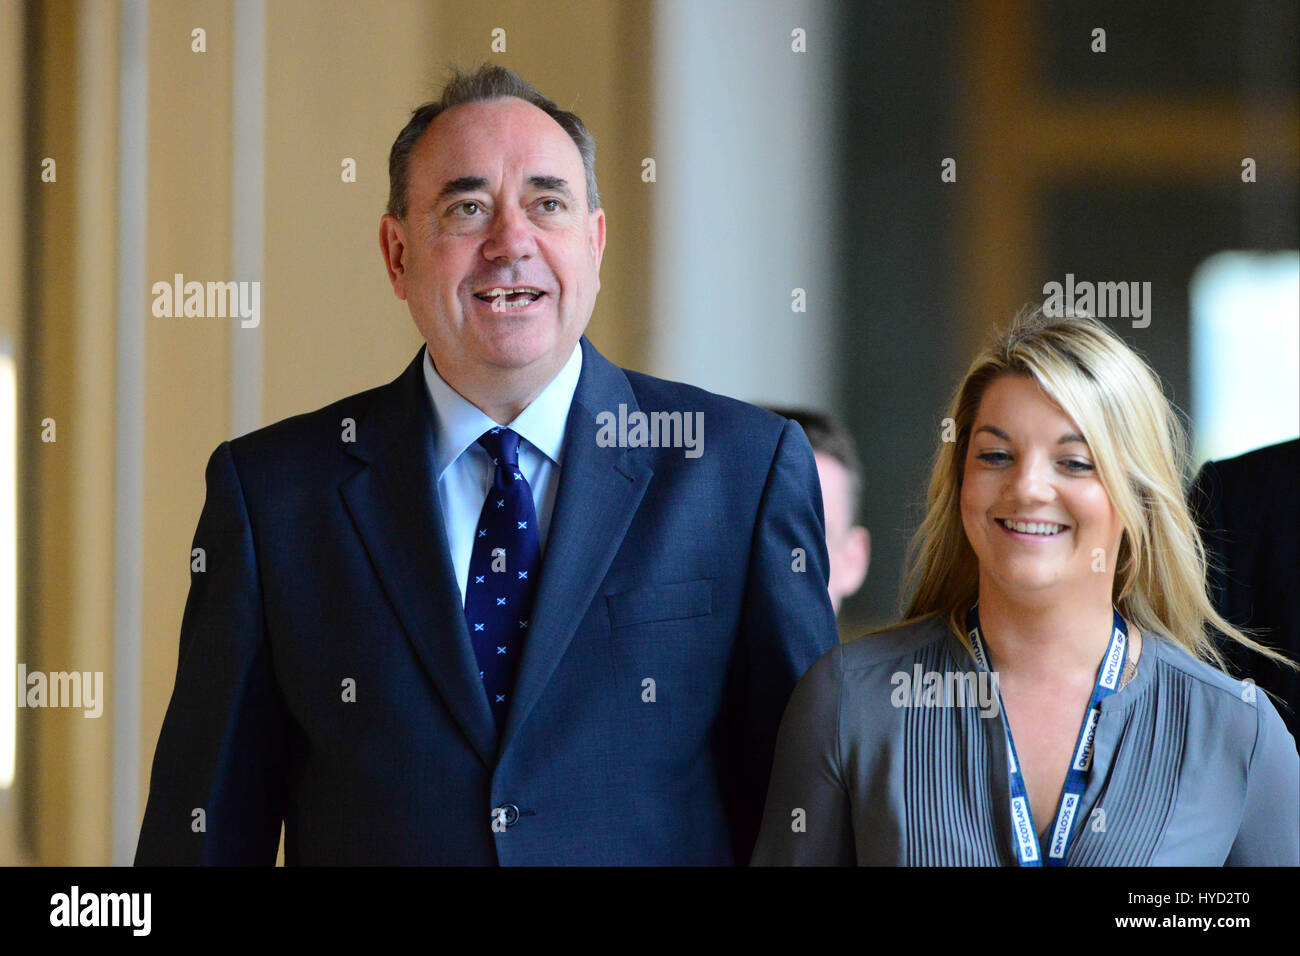 Scotland's First Minister Alex Salmond makes his way to the chamber of the Scottish Parliament to make a statement Stock Photo